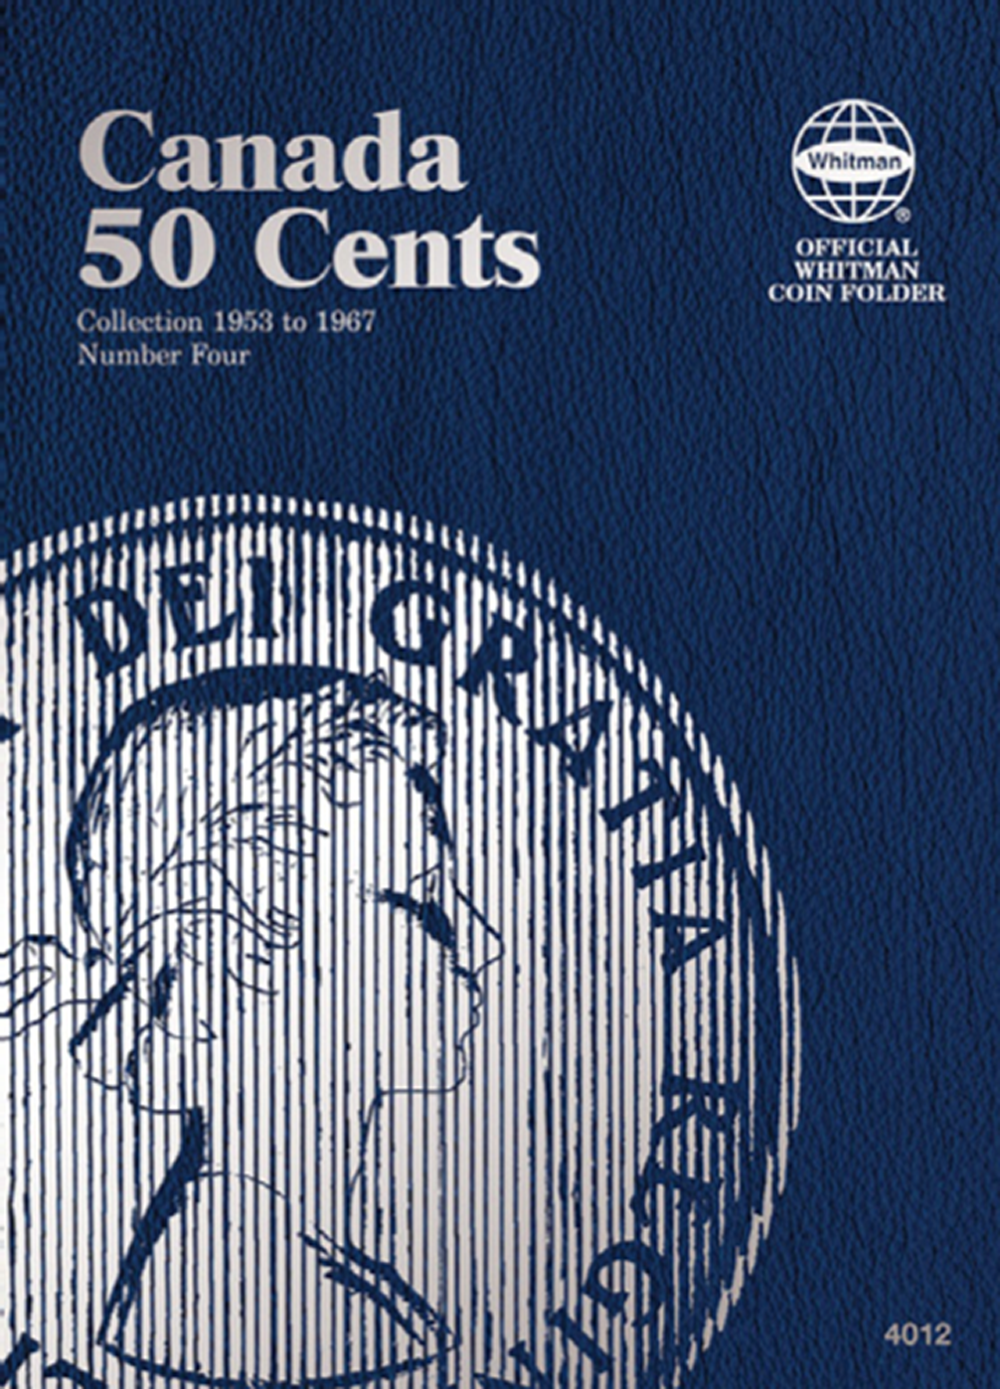 Canadian 50 Cents Vol. IV 1953-1967